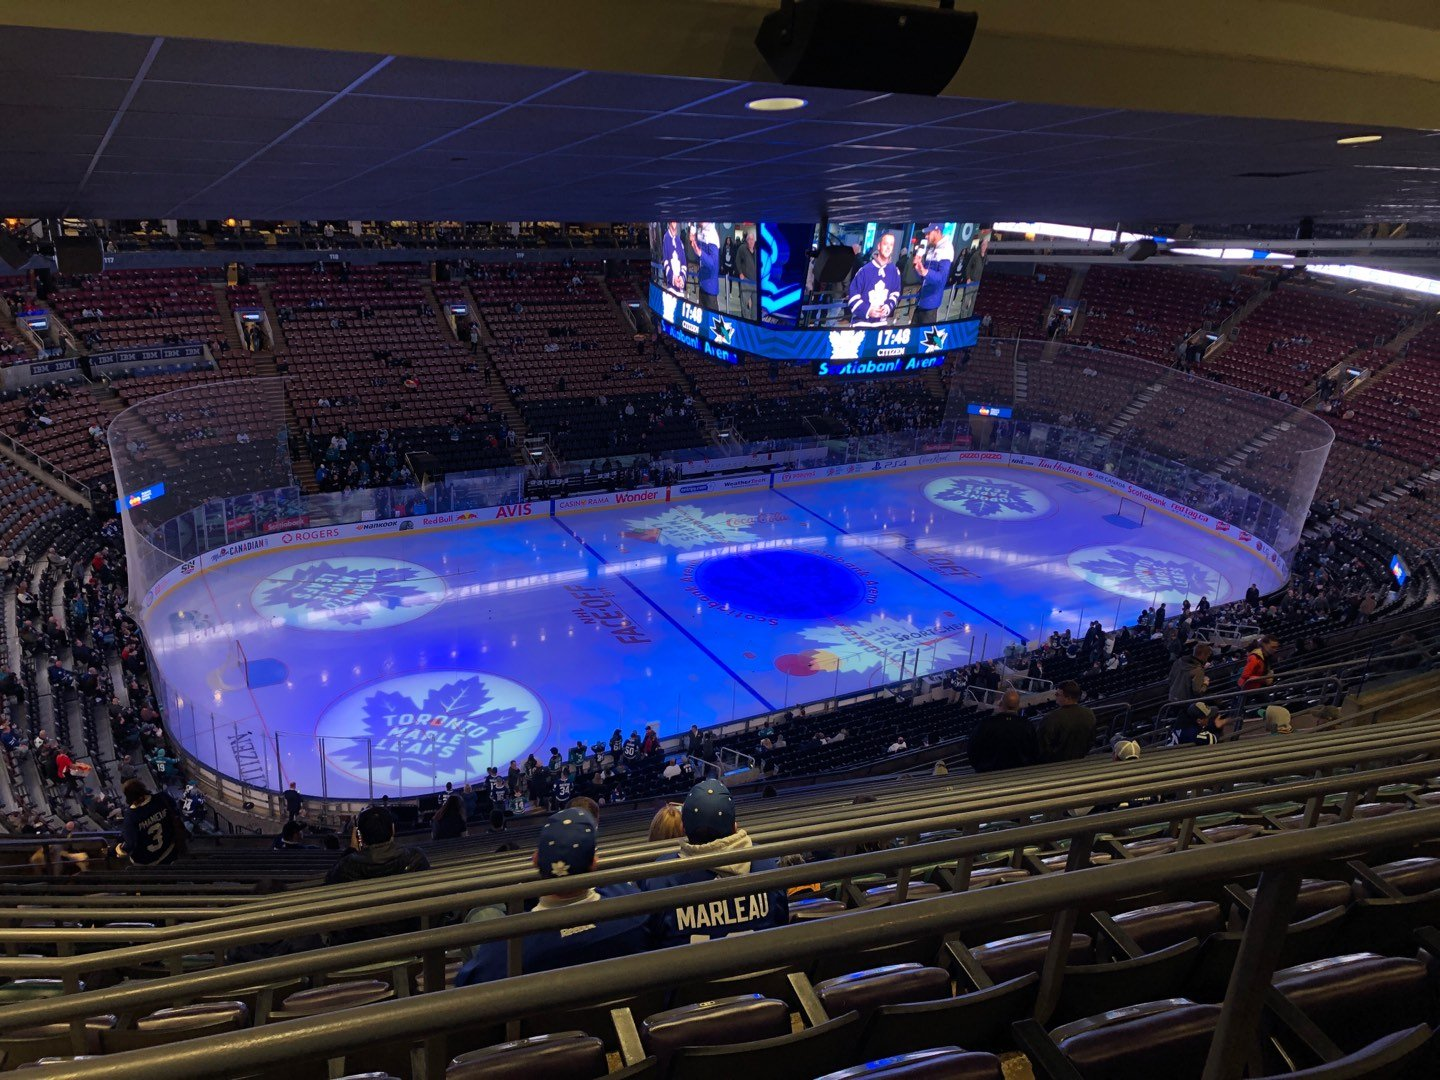 Scotiabank Arena Section 311 Row 17 Seat 24